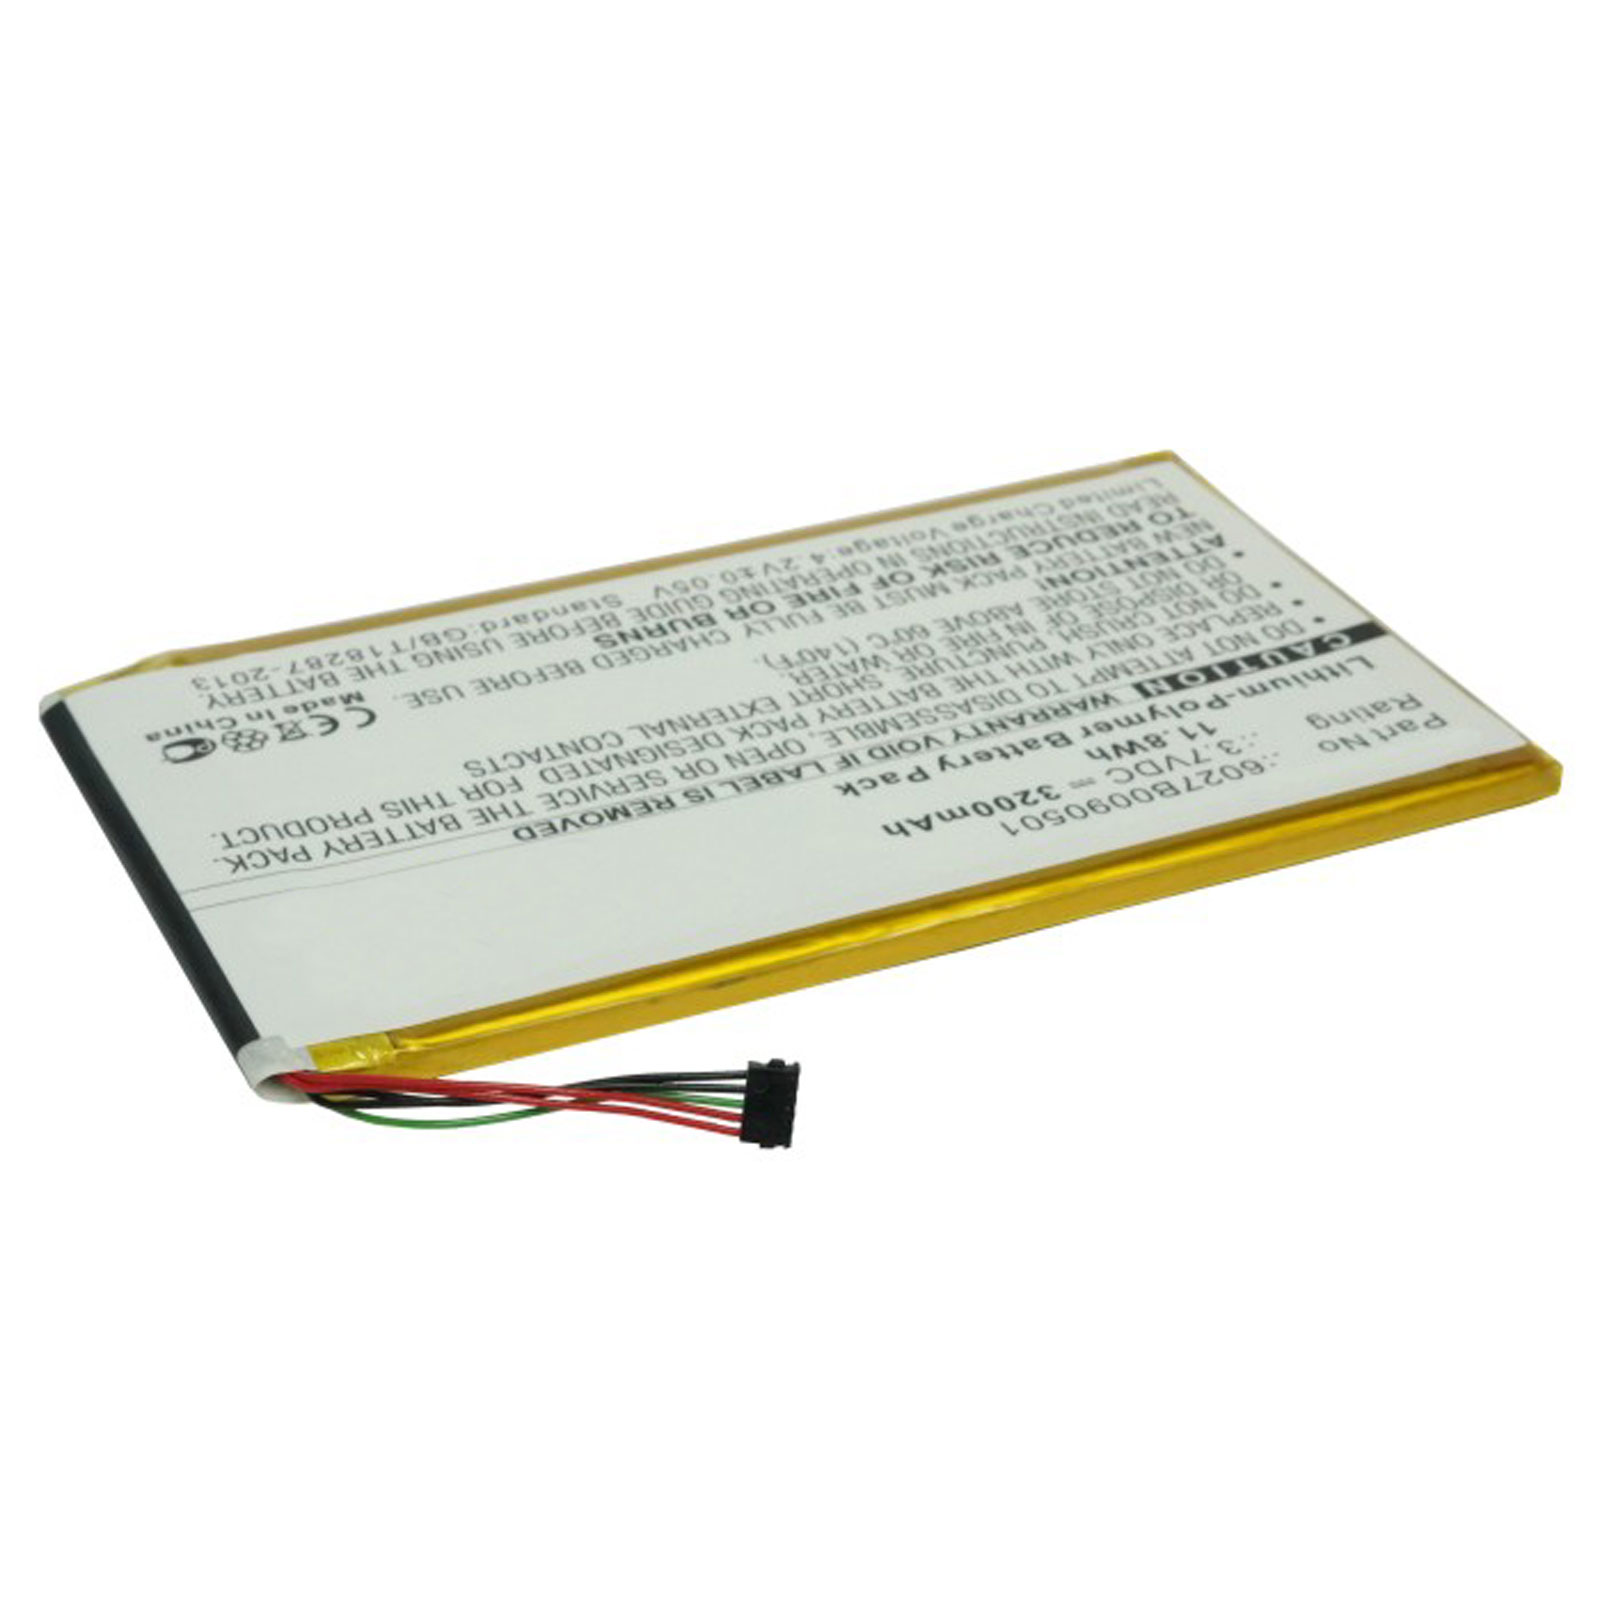 Original Nook Color Chargergenuine Barnes Noble Hd Wiring Diagram Battery 28 Images Repair Ifixit